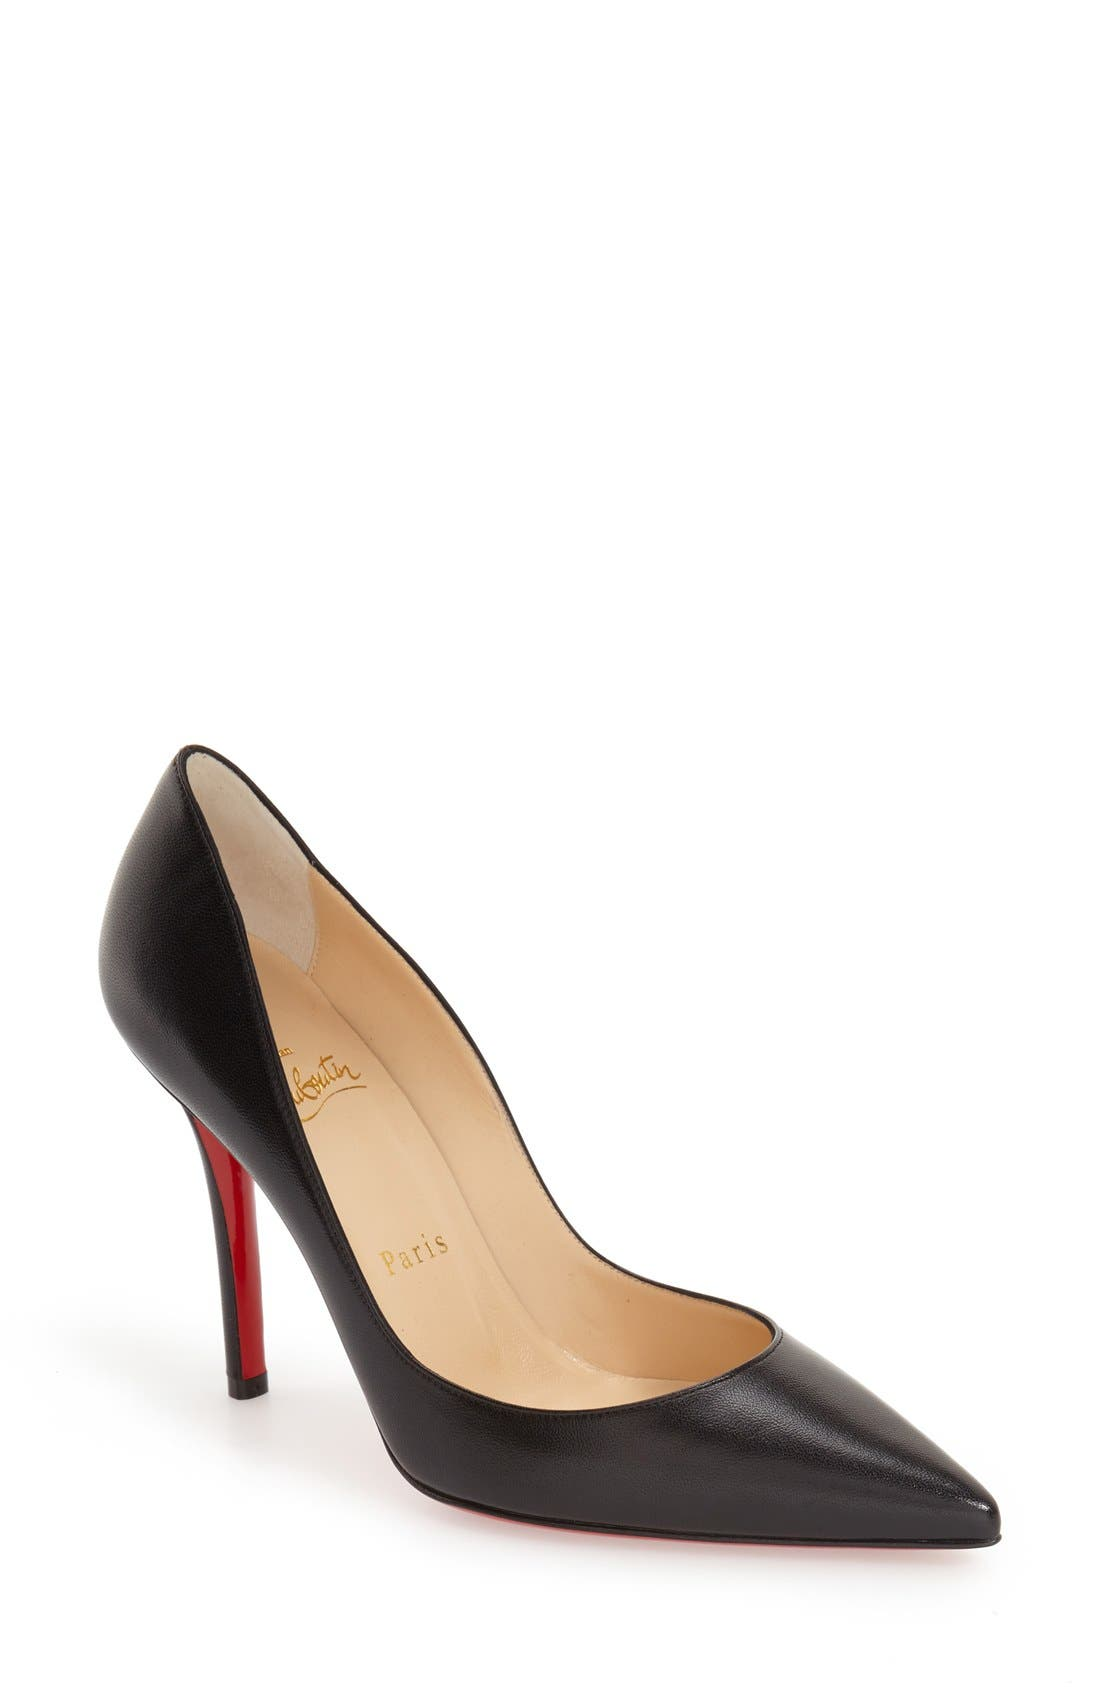 'Apostrophy' Pointy Toe Pump, Main, color, BLACK LEATHER